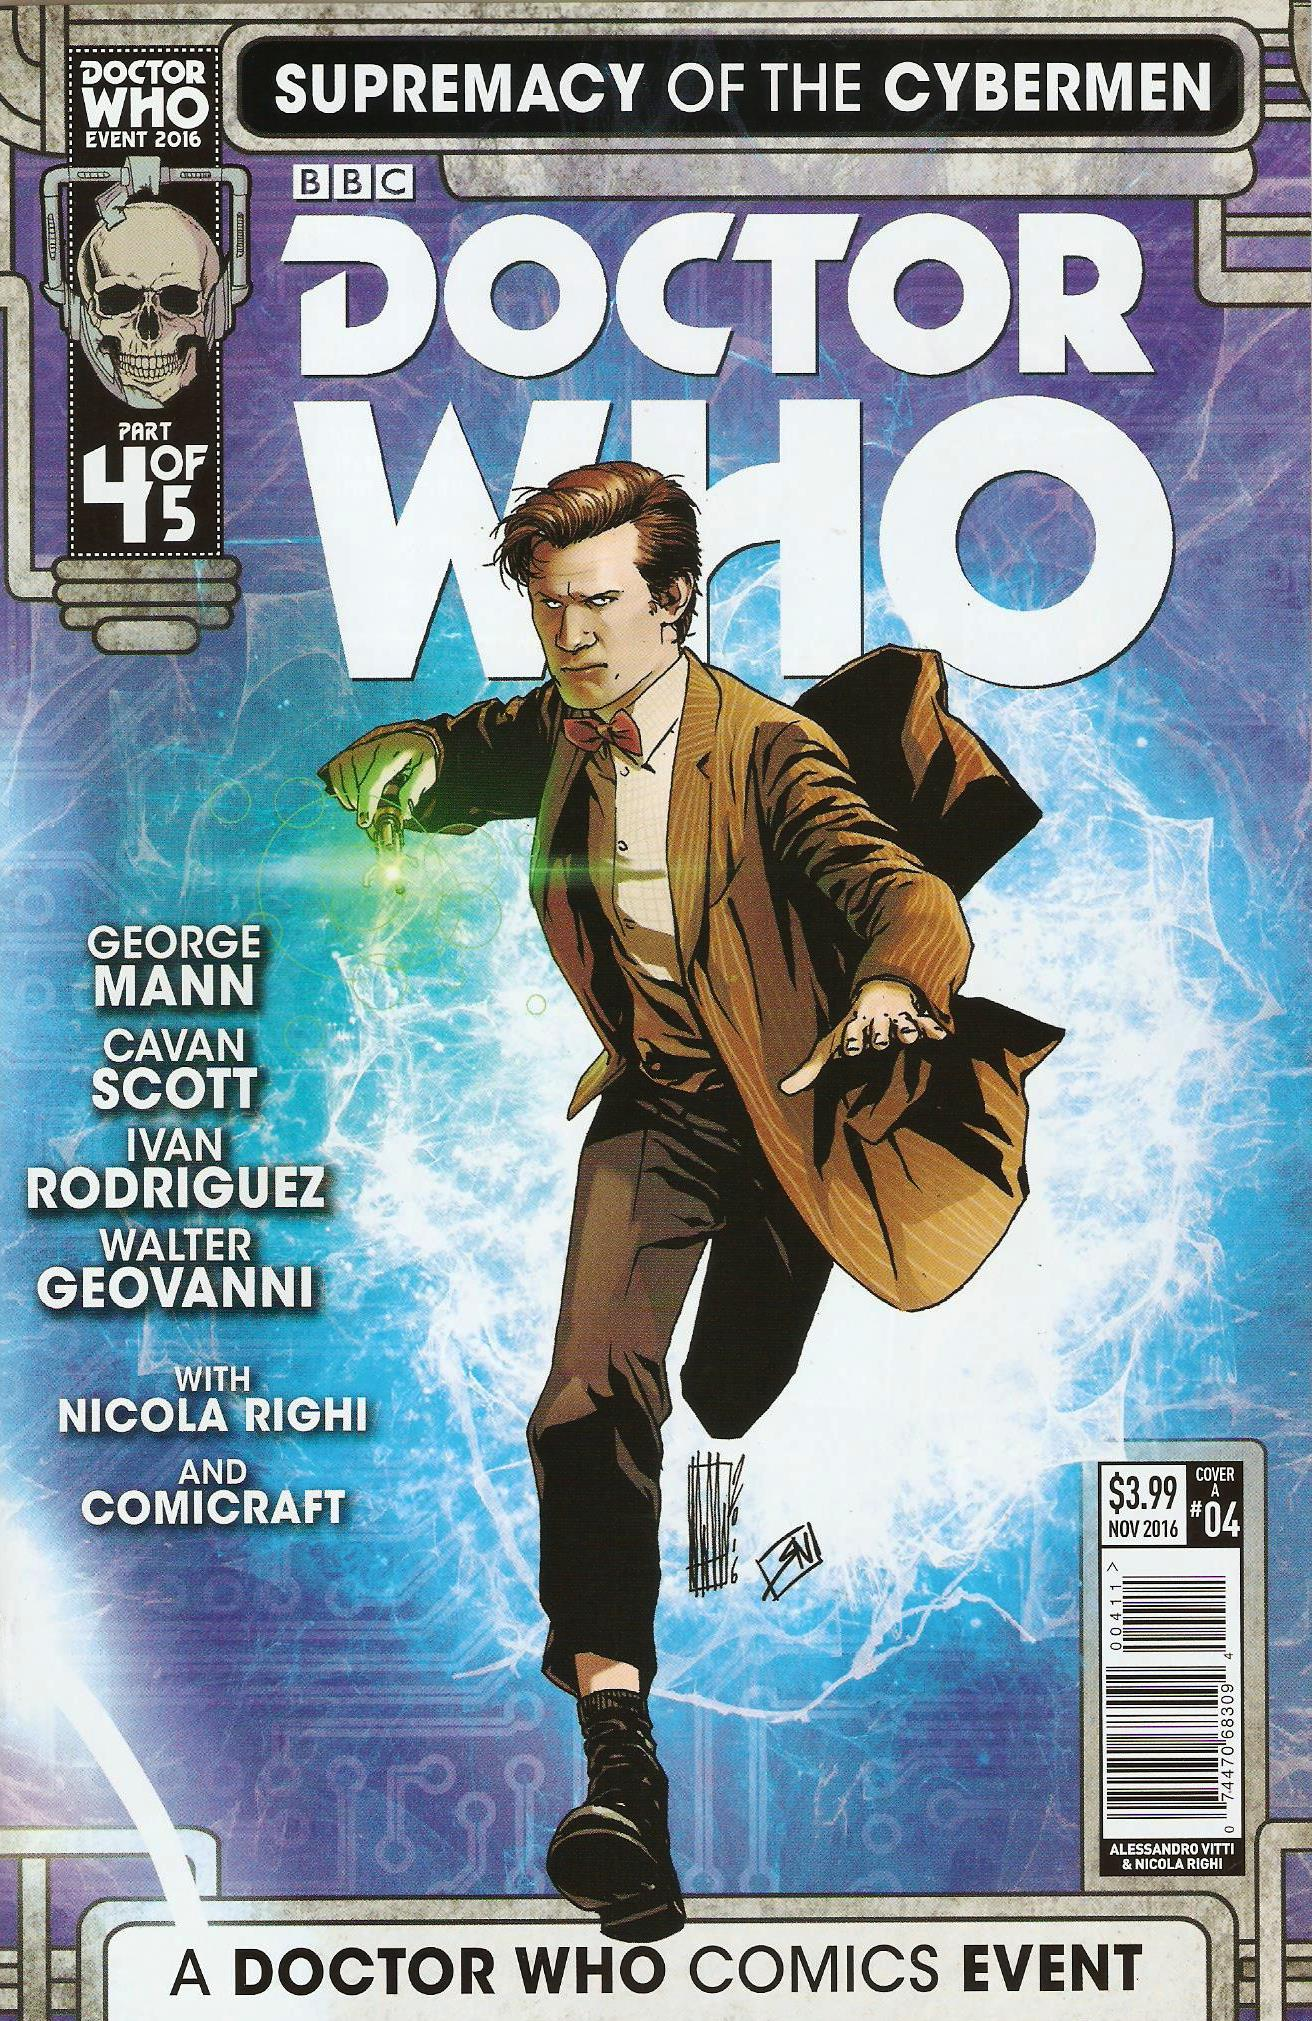 Supremacy of the cybermen issue 4a